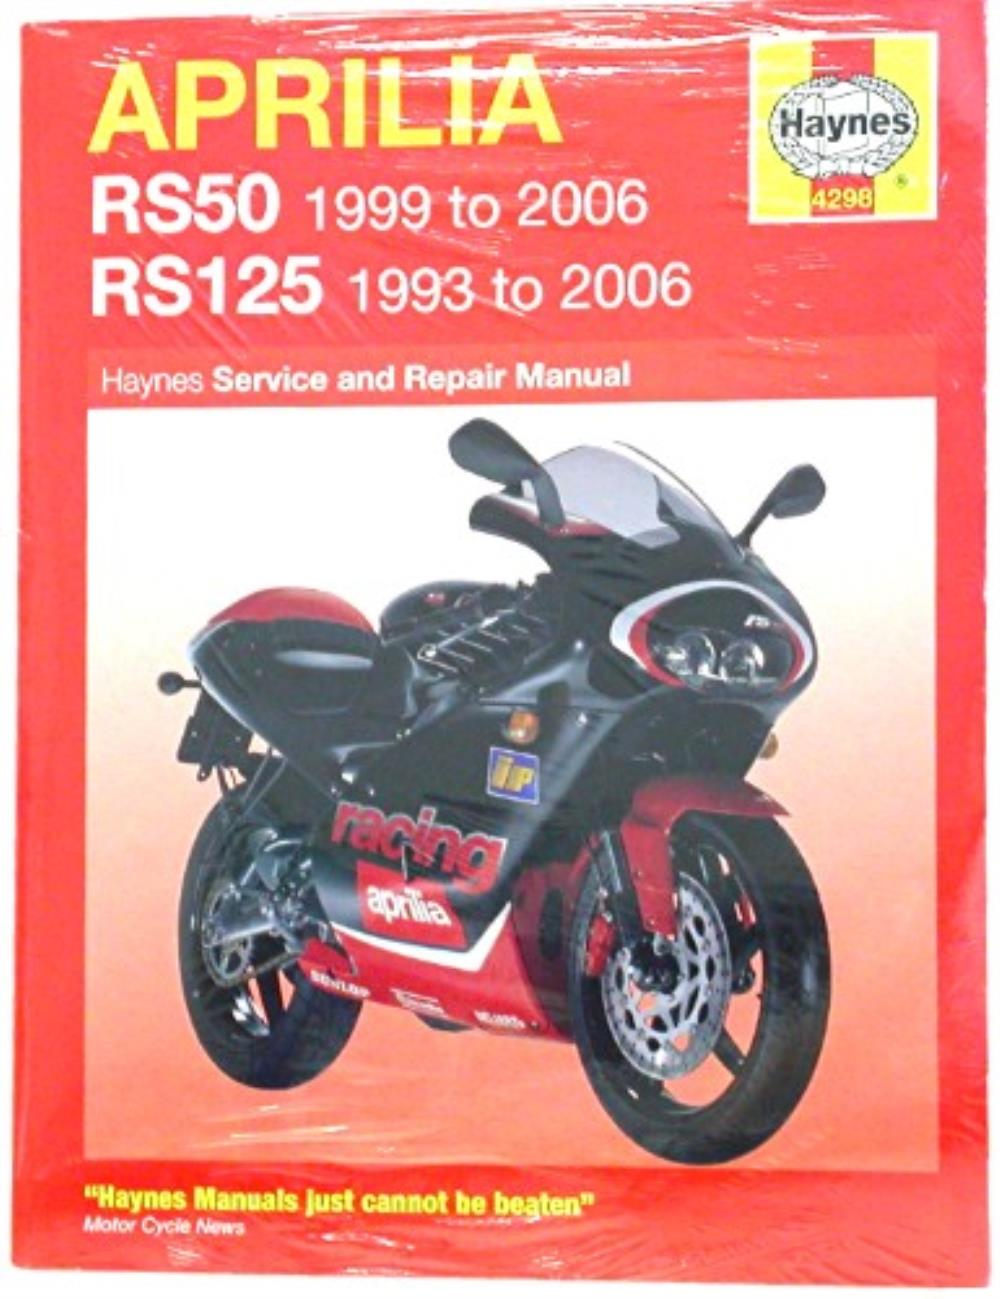 manual haynes for 2000 aprilia rs 50 ebay rh ebay co uk aprilia rs 50 workshop manual aprilia rs 50 manual free download